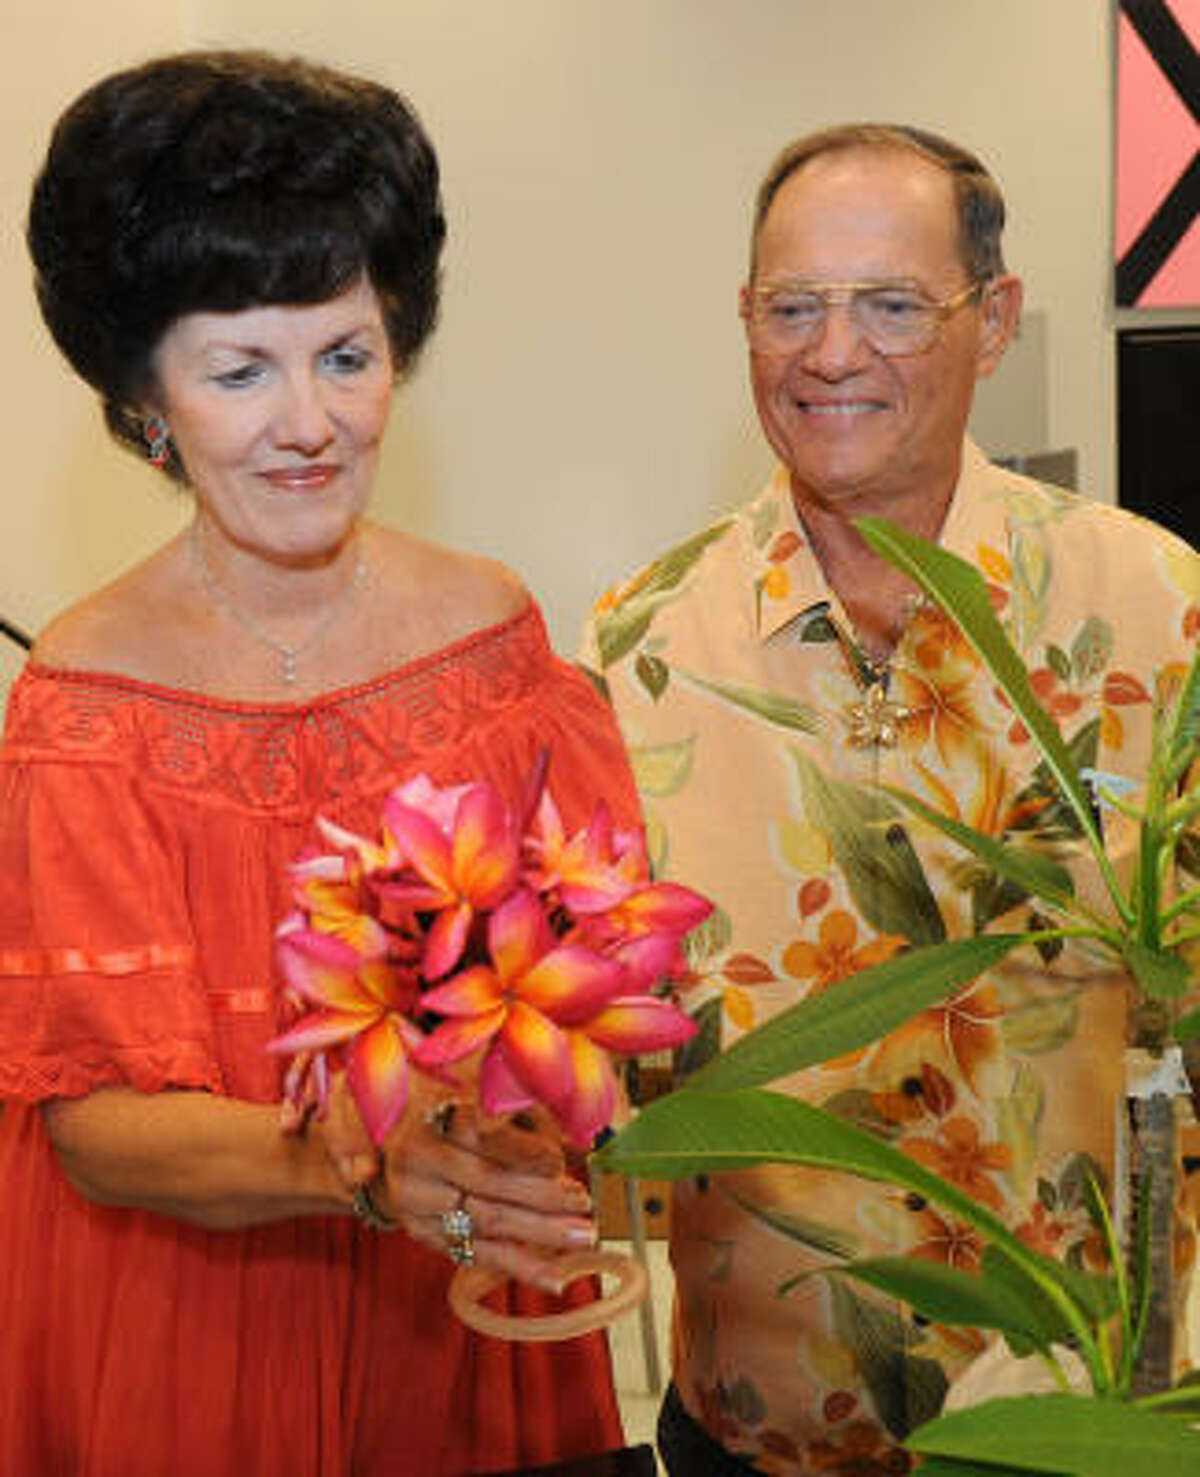 Nancy Wills shows off a plumeria variety called Jeannie Morgane. Her husband, Emerson, accompanied her.